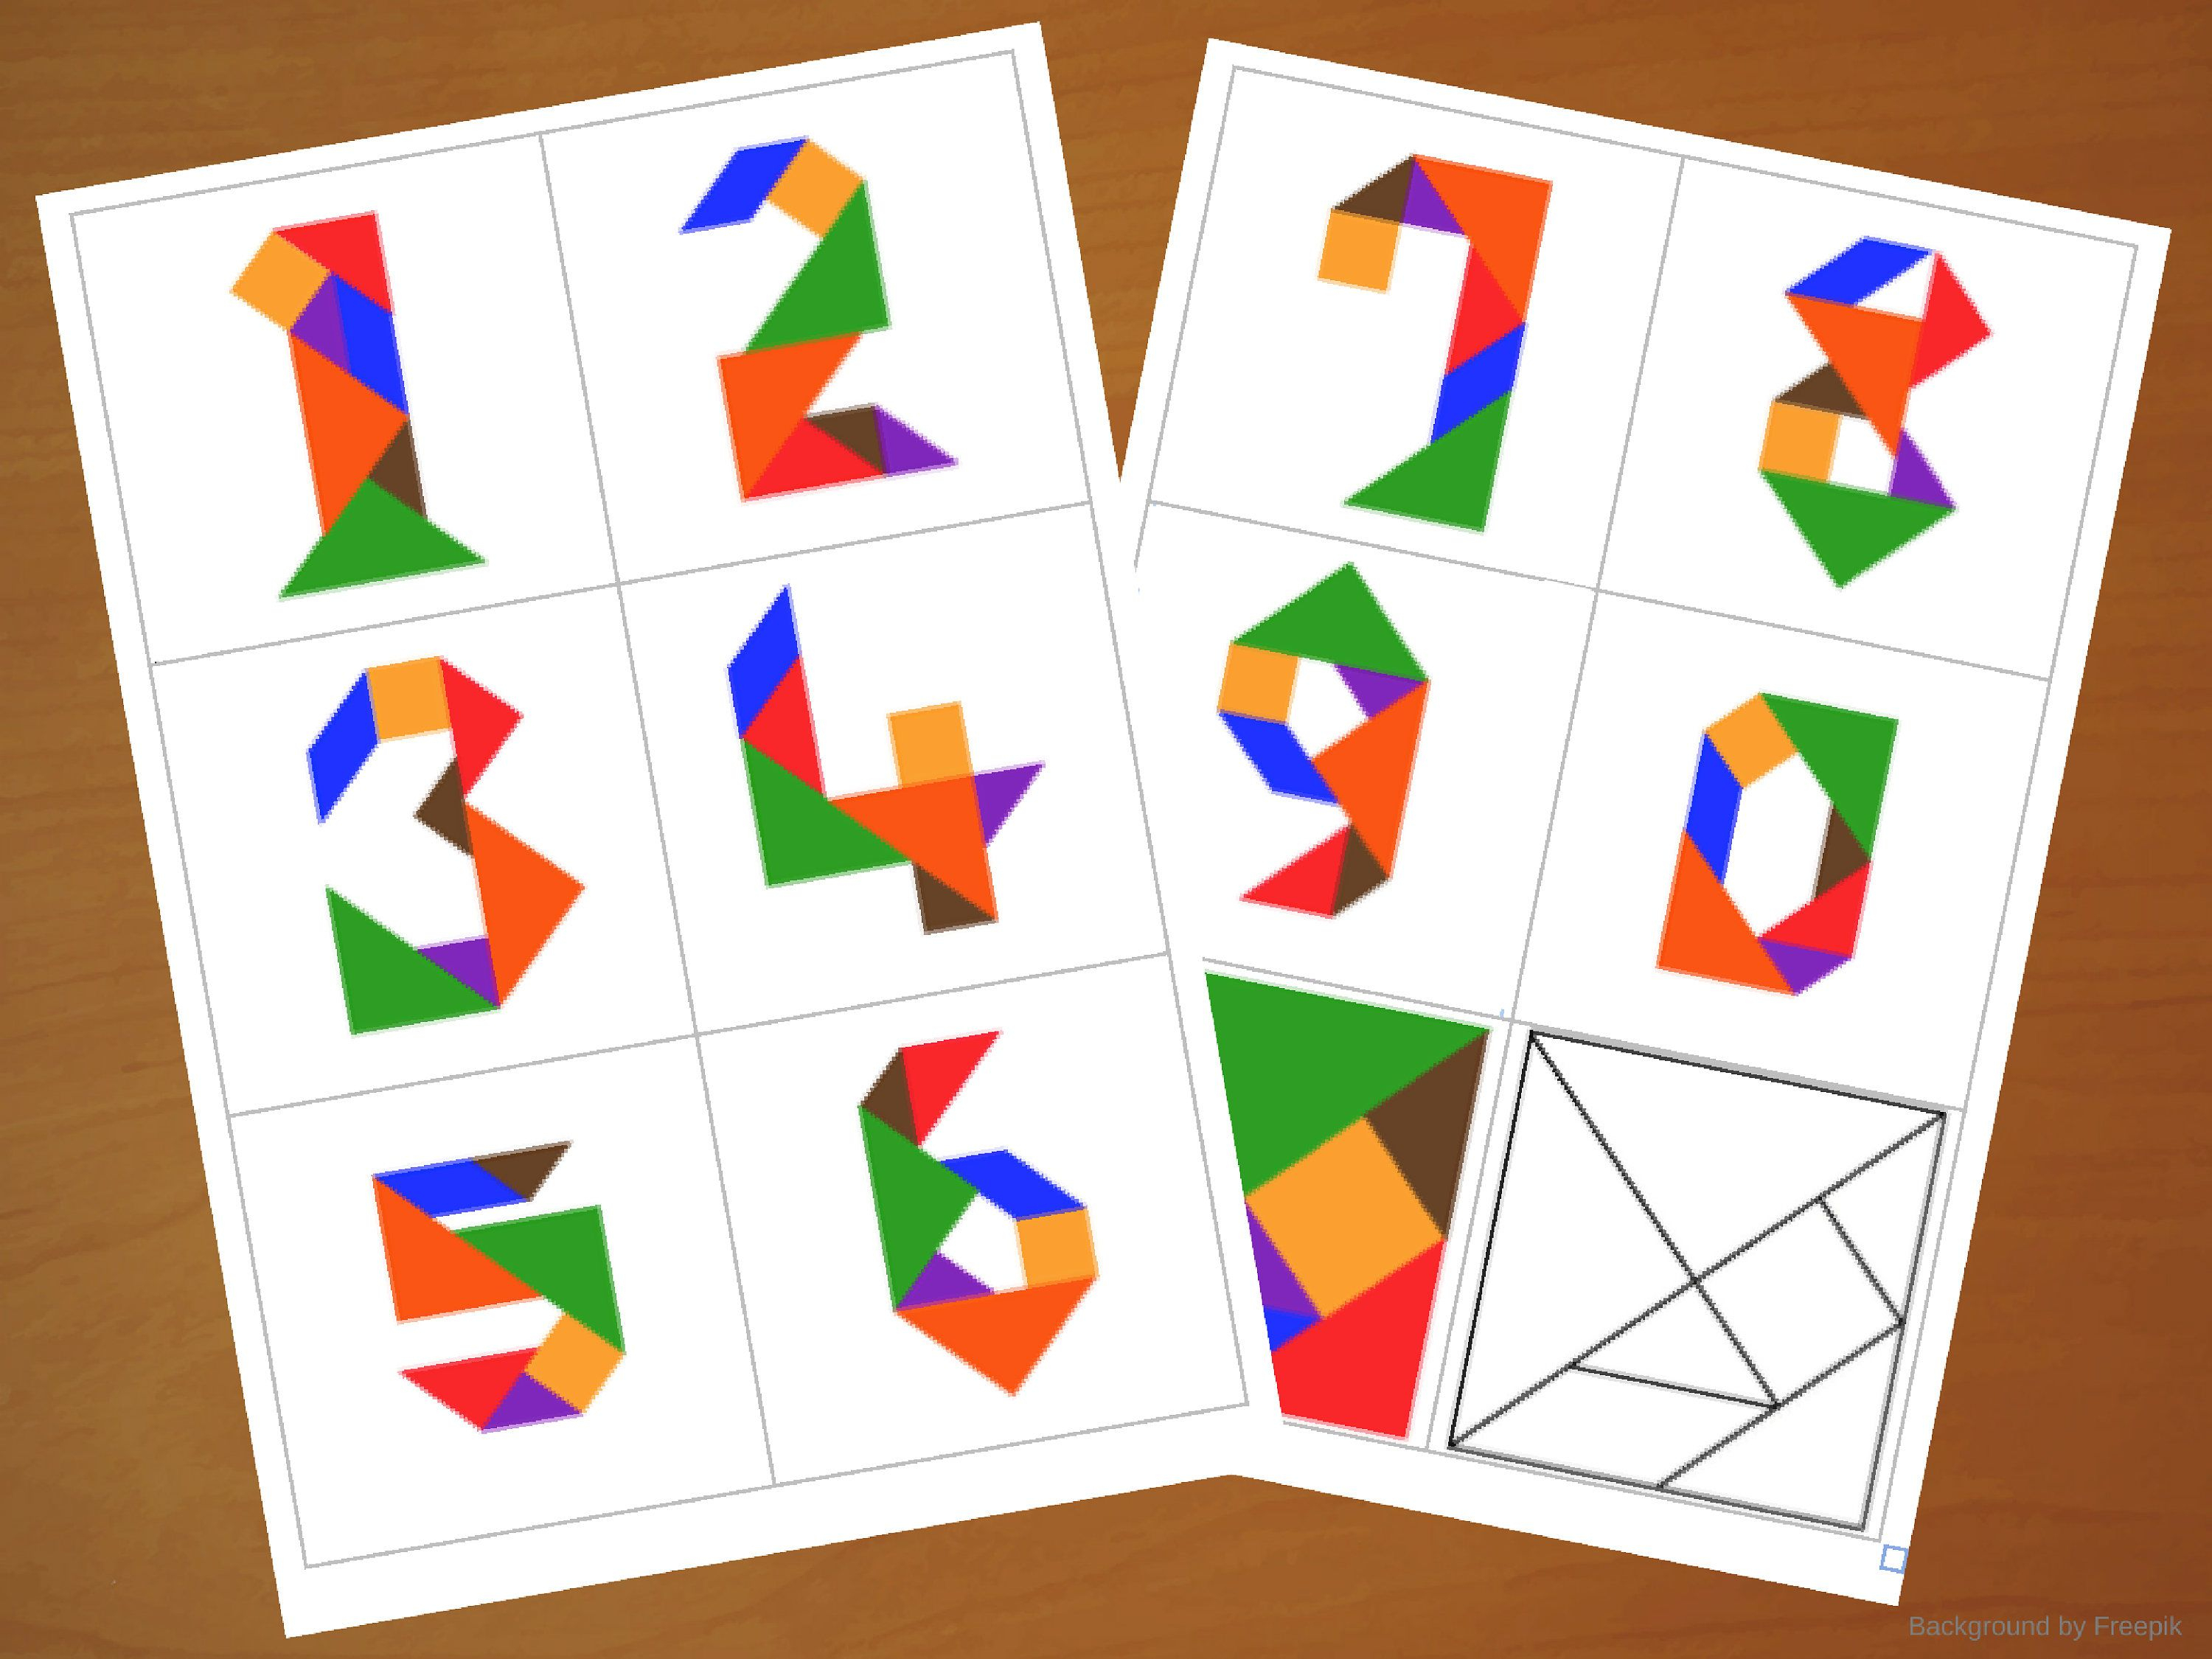 Downloadable Tangram Cards - Tangram Numbers - Tangram Puzzles - Printable Tangram Puzzle Pieces